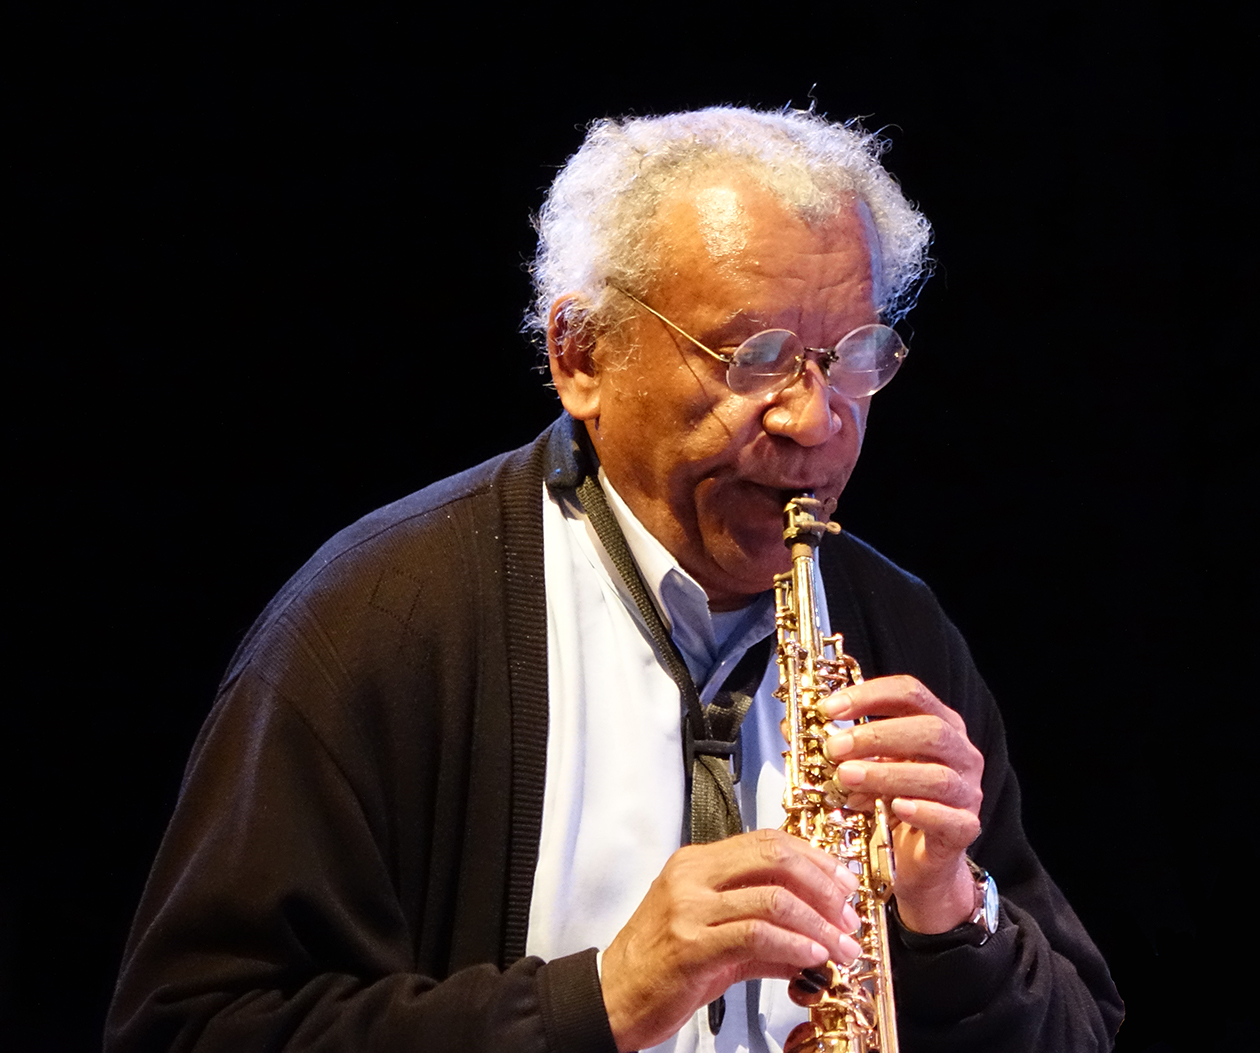 Anthony Braxton at Doek Festival 2015